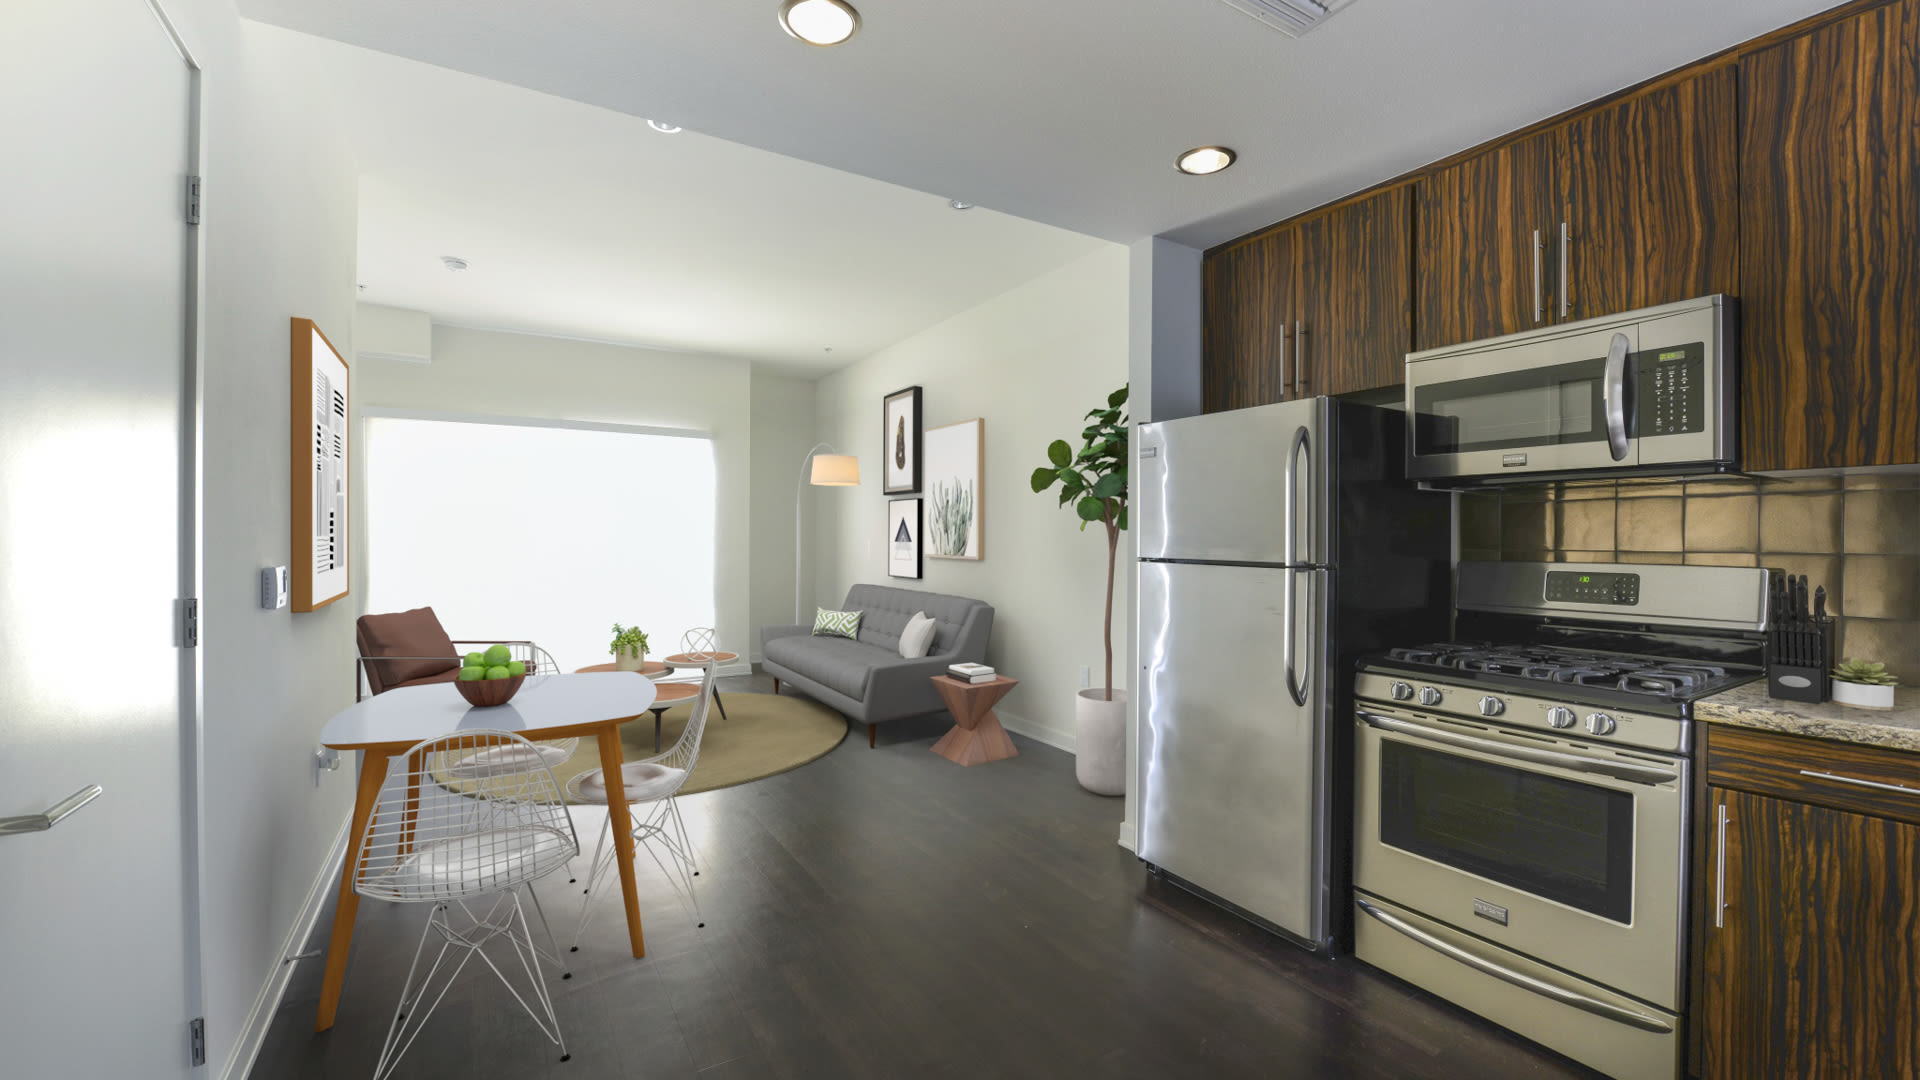 C on Pico Apartments - Dining Room and Kitchen with Stainless Steel Appliances